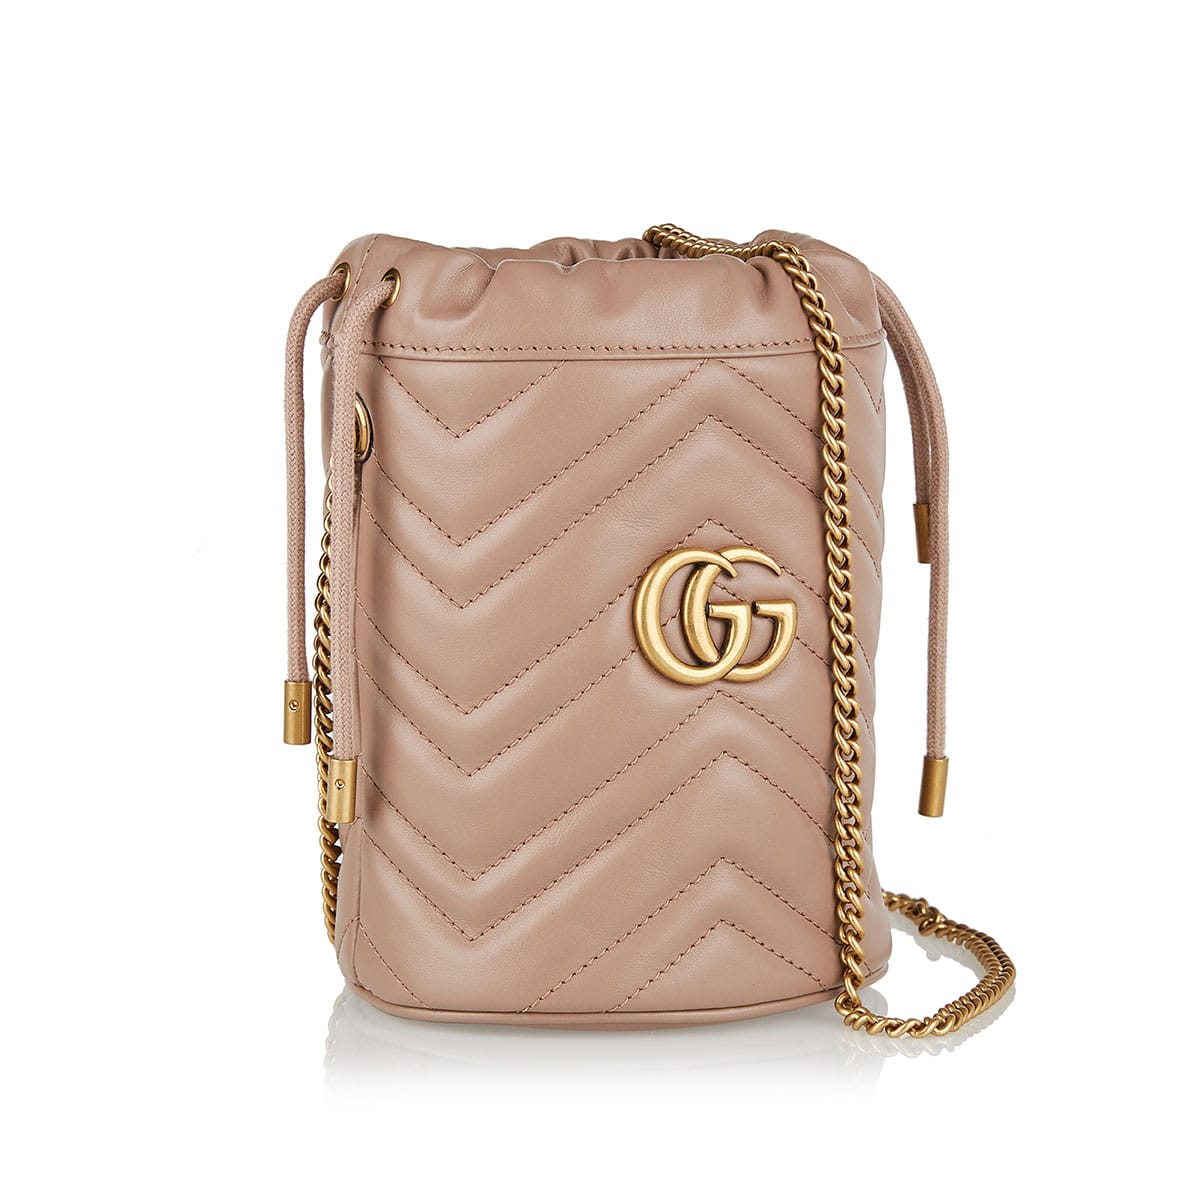 GG Marmont mini bucket bag